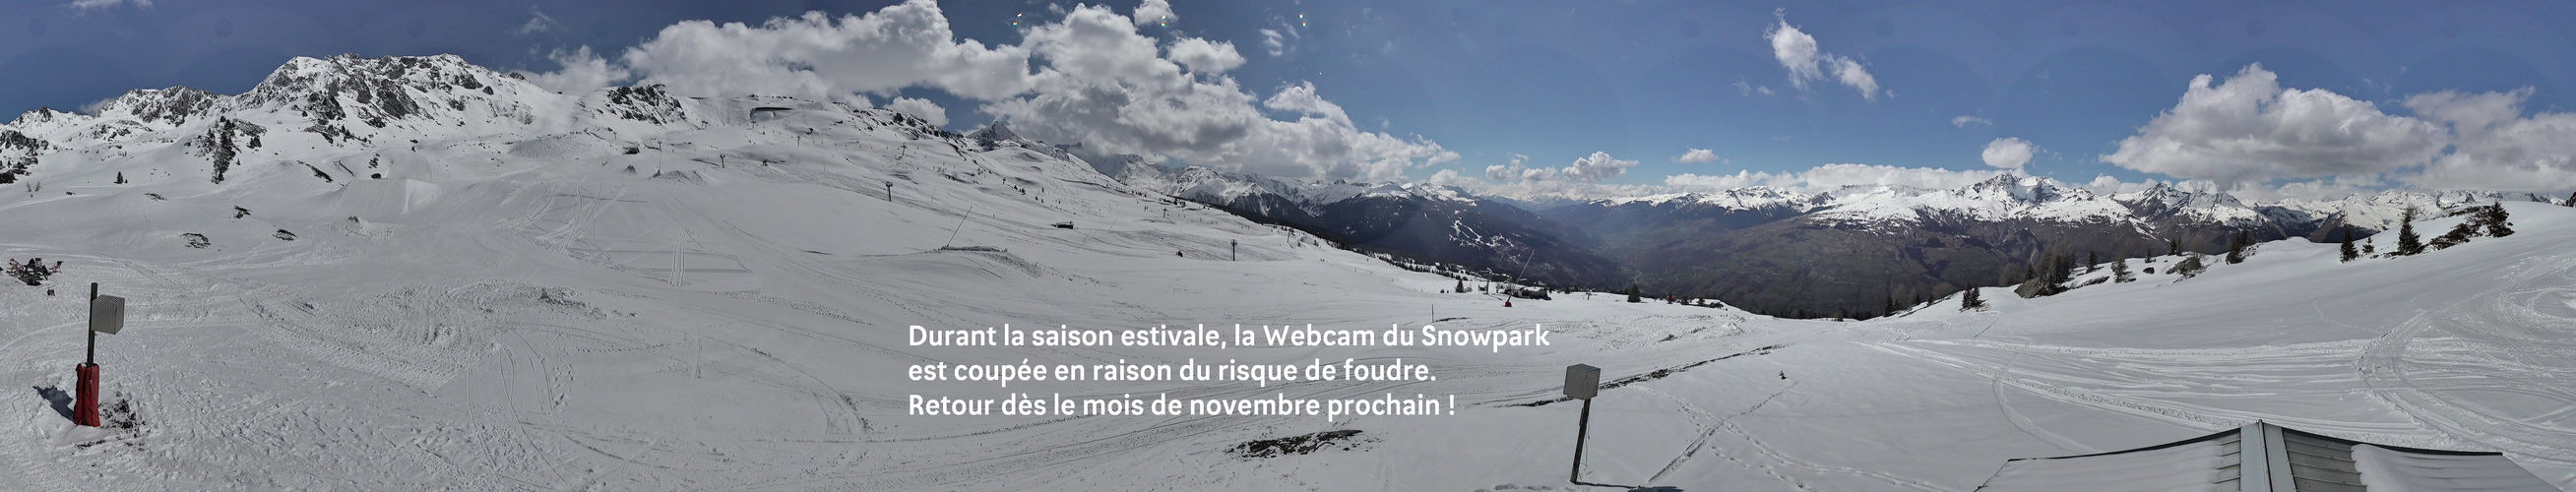 Webcam - Snowpark